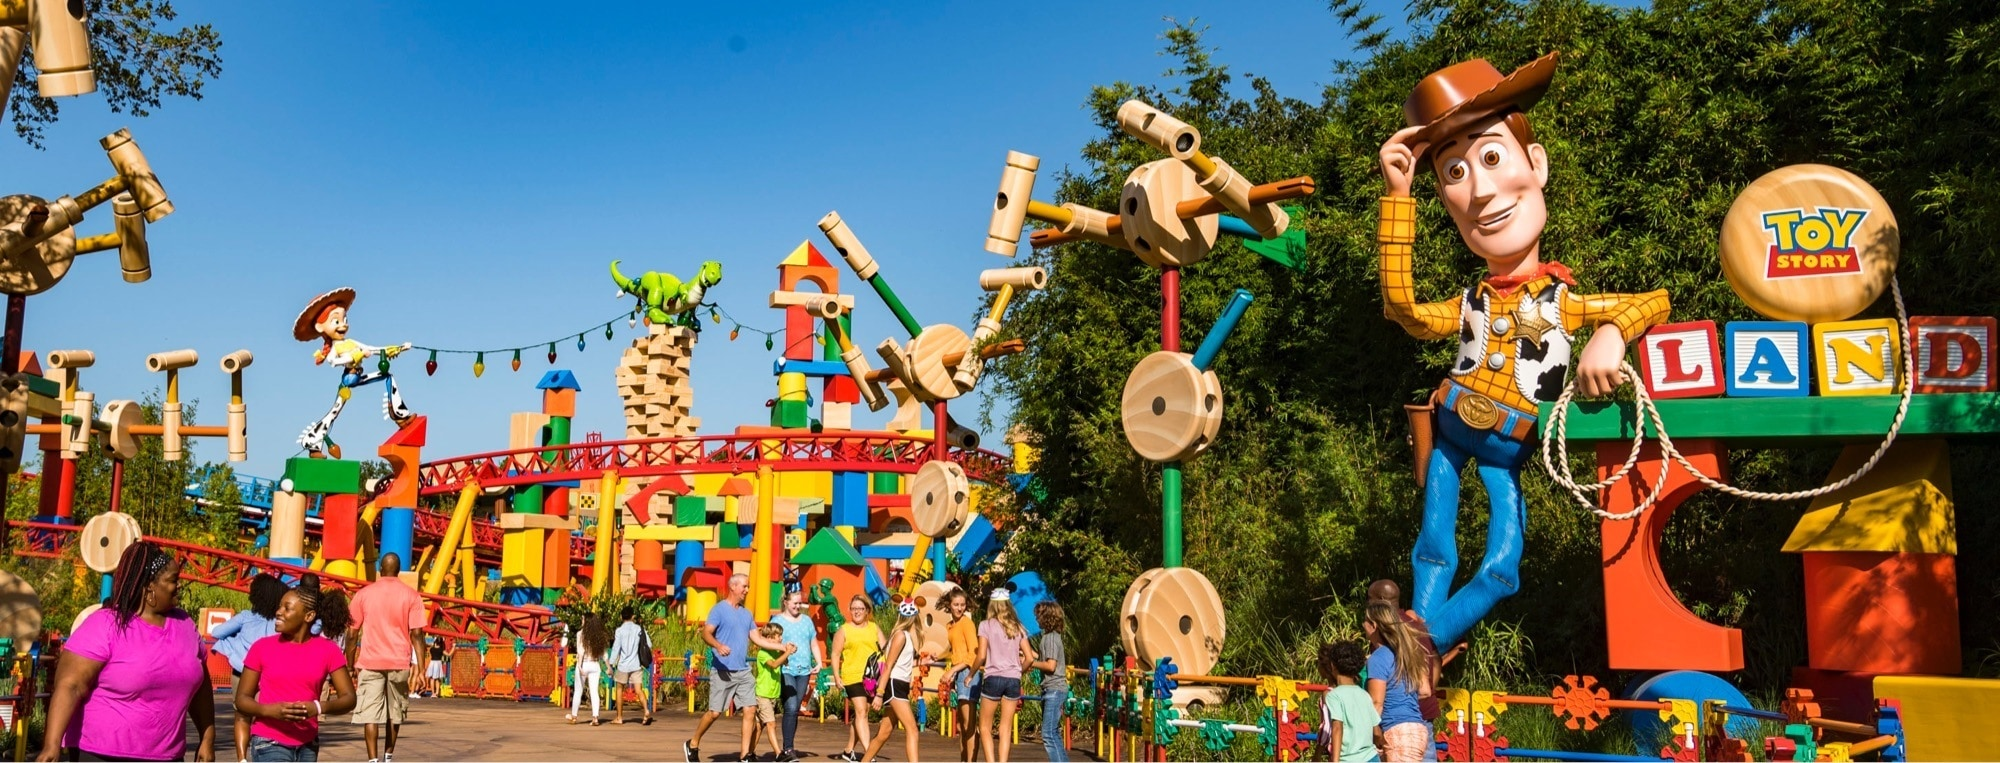 Walt Disney World - Toy Story Land